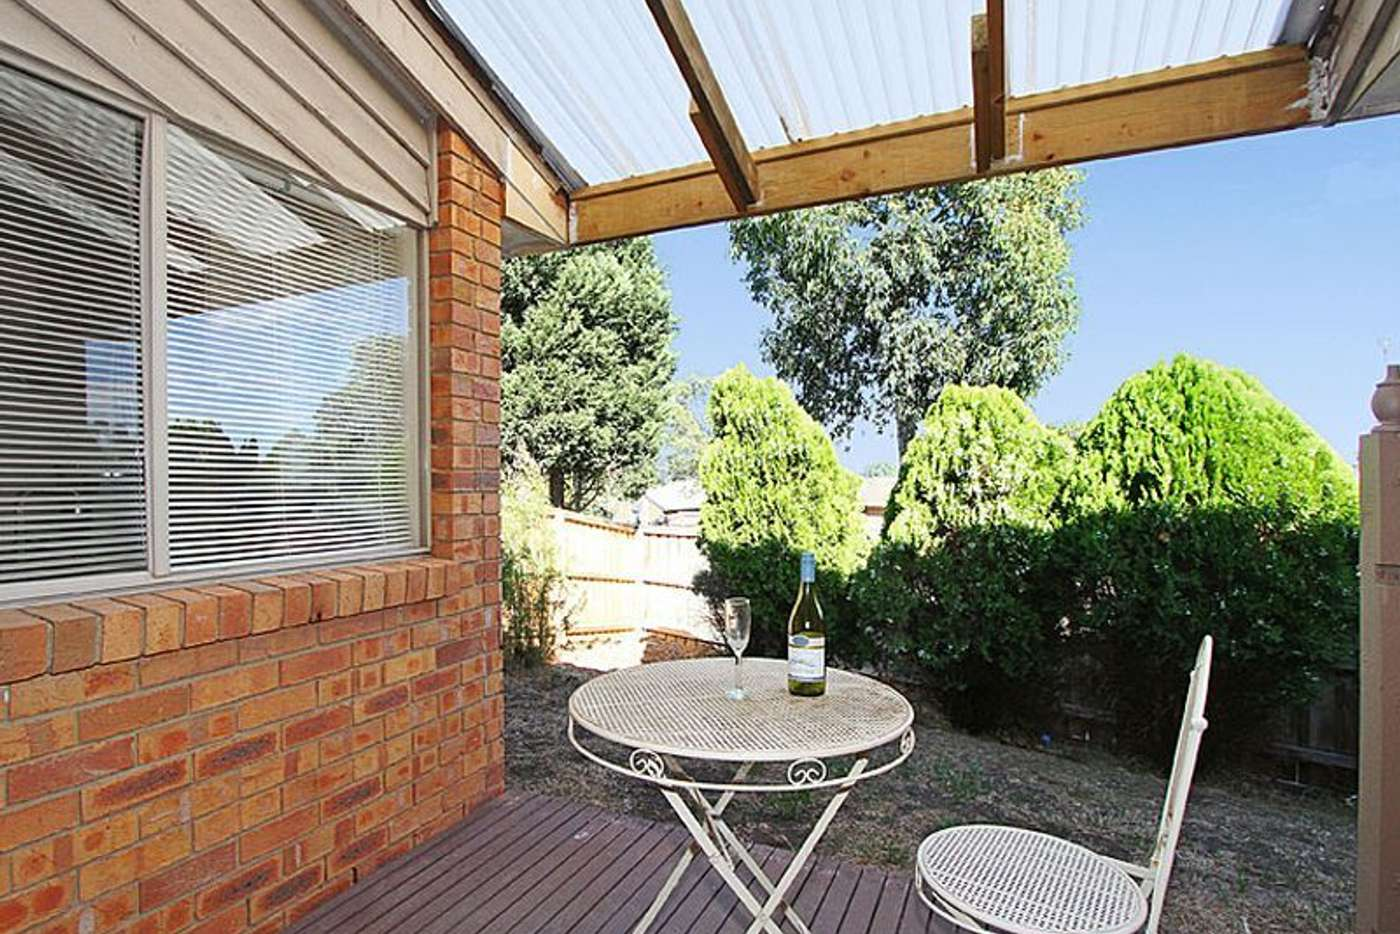 Seventh view of Homely house listing, 6 Small Court, Mill Park VIC 3082